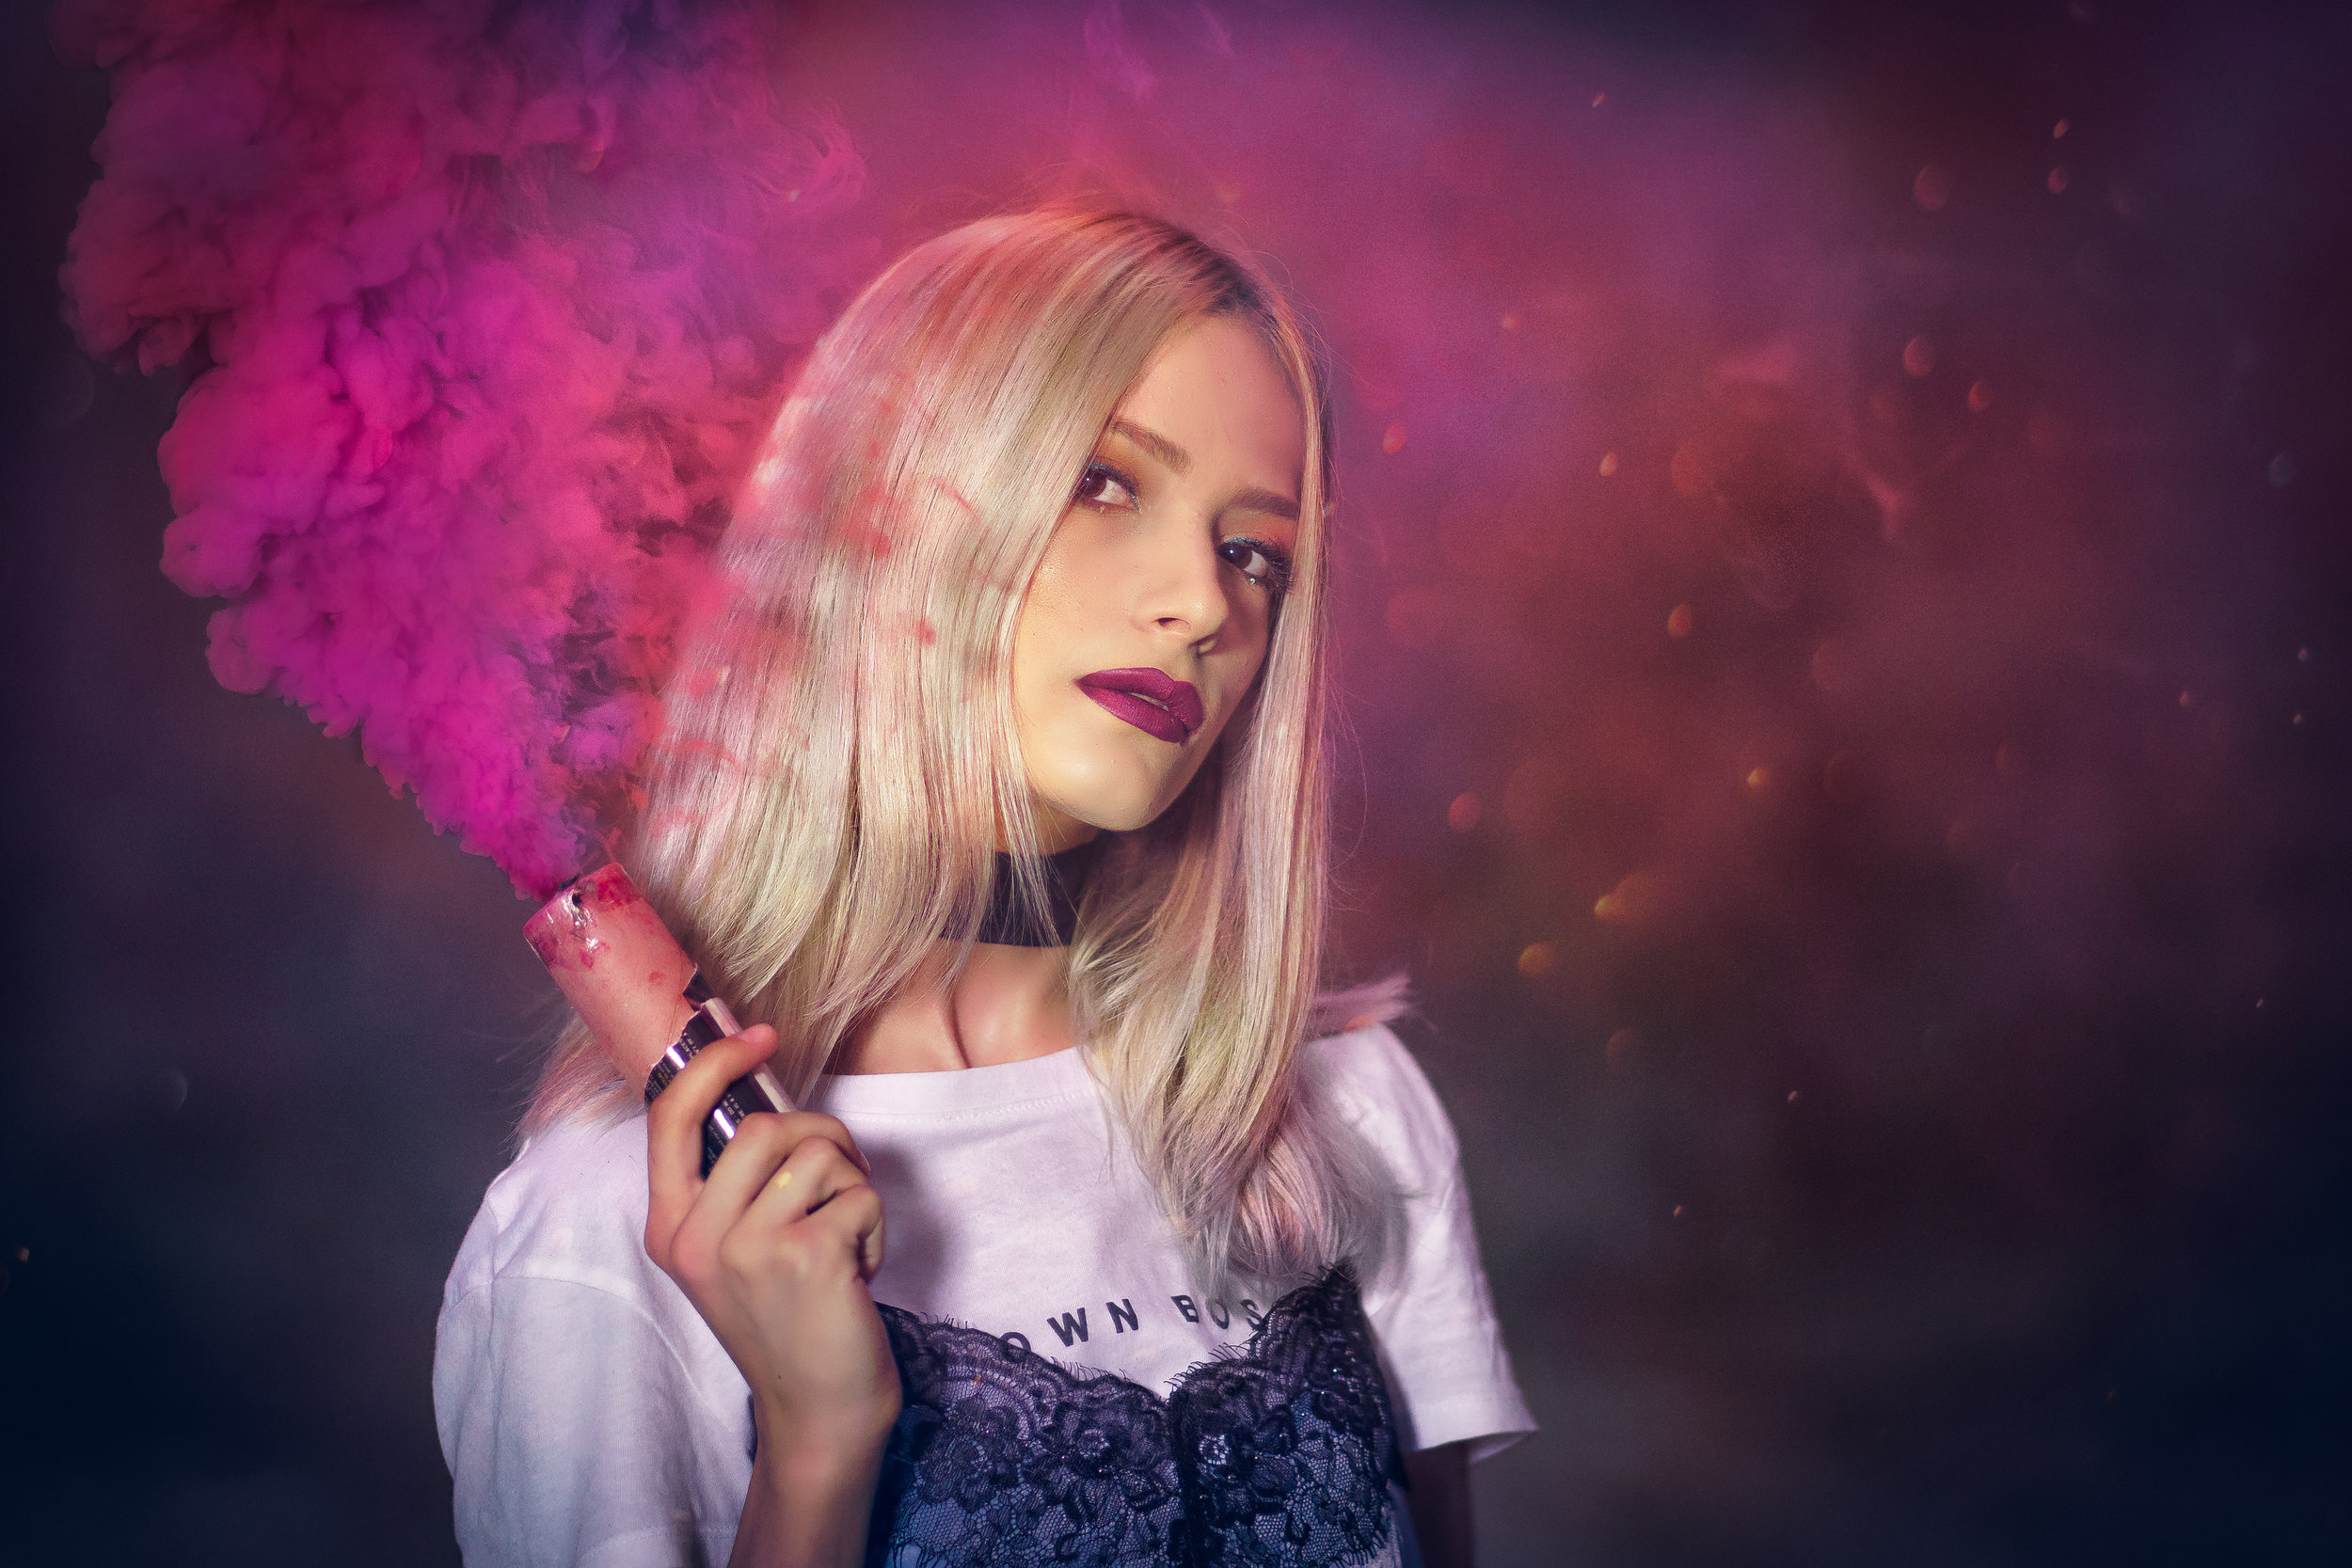 blonde girl holding pink smoke grenade in the forest Crina Popescu fotograf Universitate Bucuresti.jpg